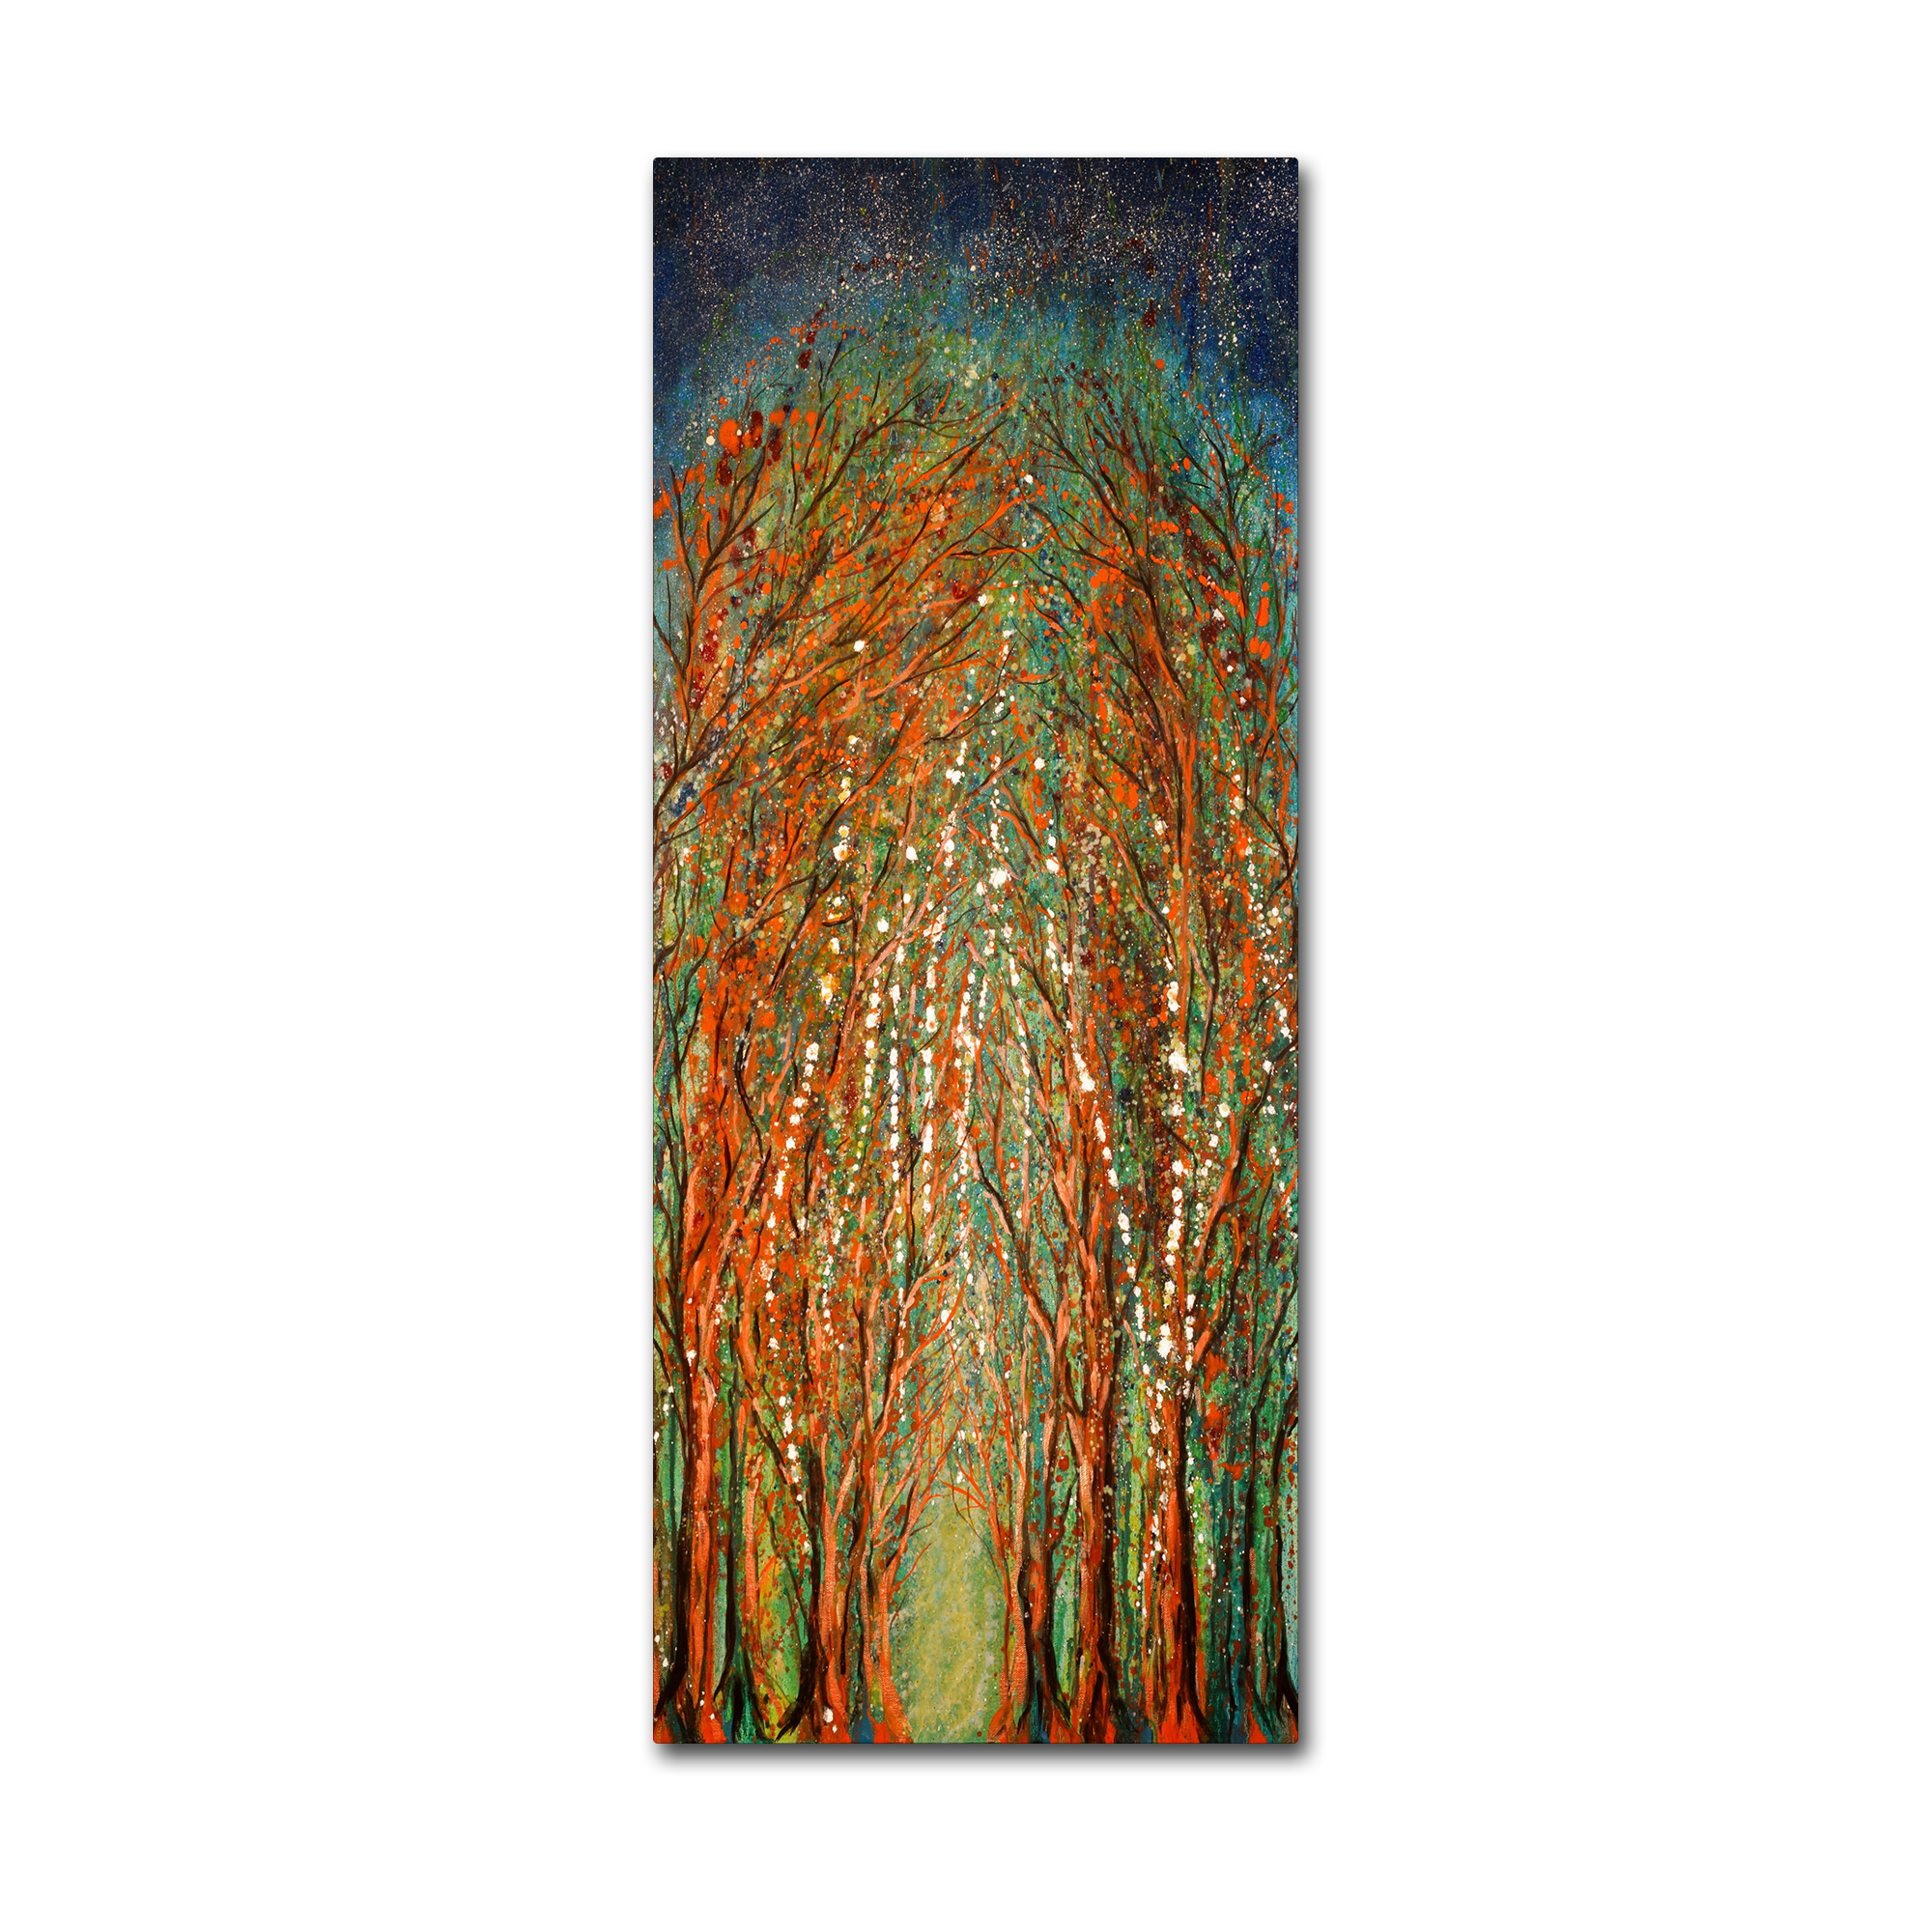 Trademark Fine Art 'The Wildwood Forest' Canvas Art by Michelle Faber